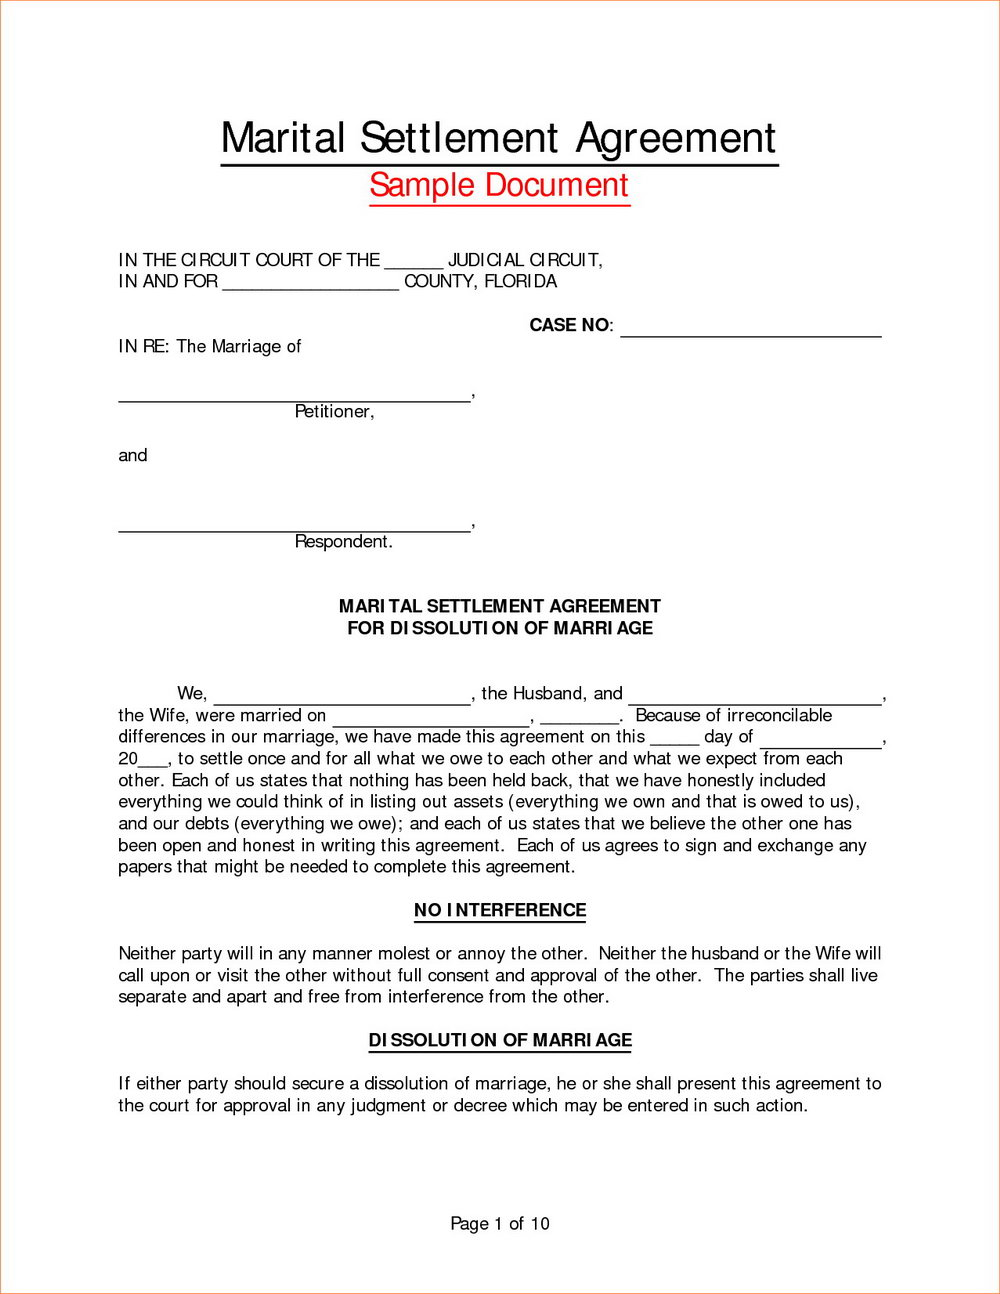 Divorce Financial Settlement Agreement Template